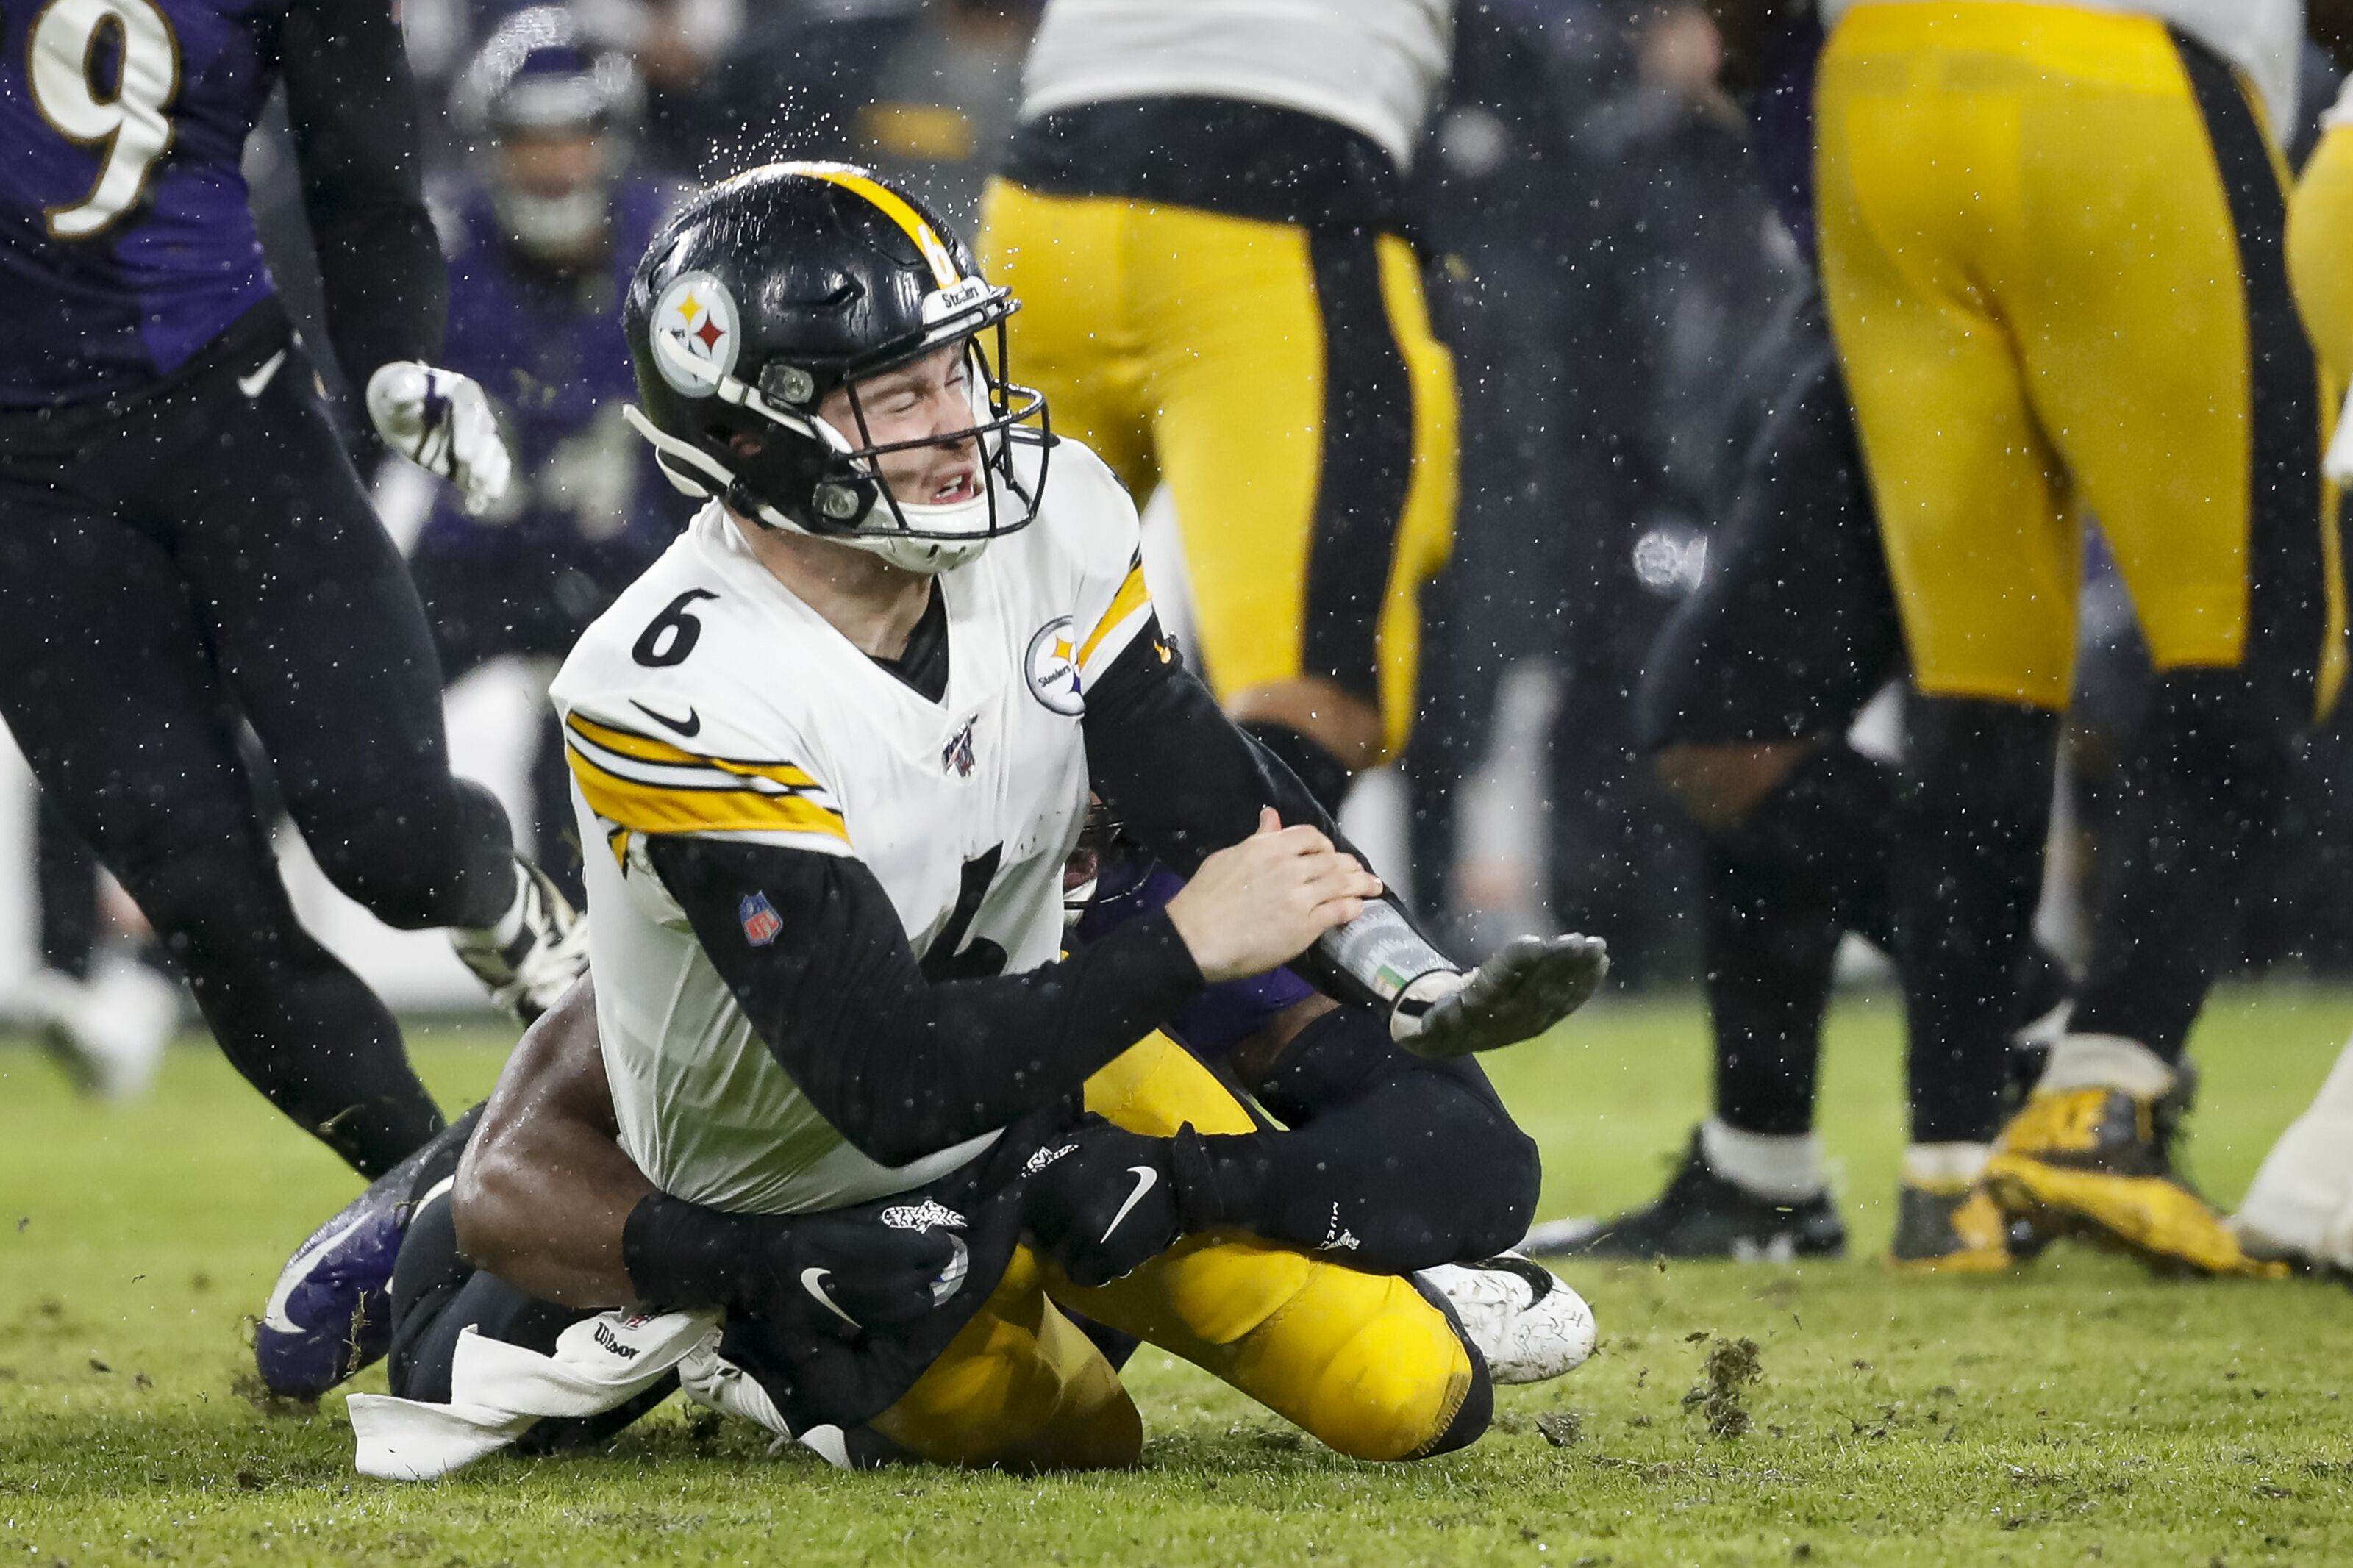 Steelers GM Kevin Colbert has no reason to be confident in backup QB situation